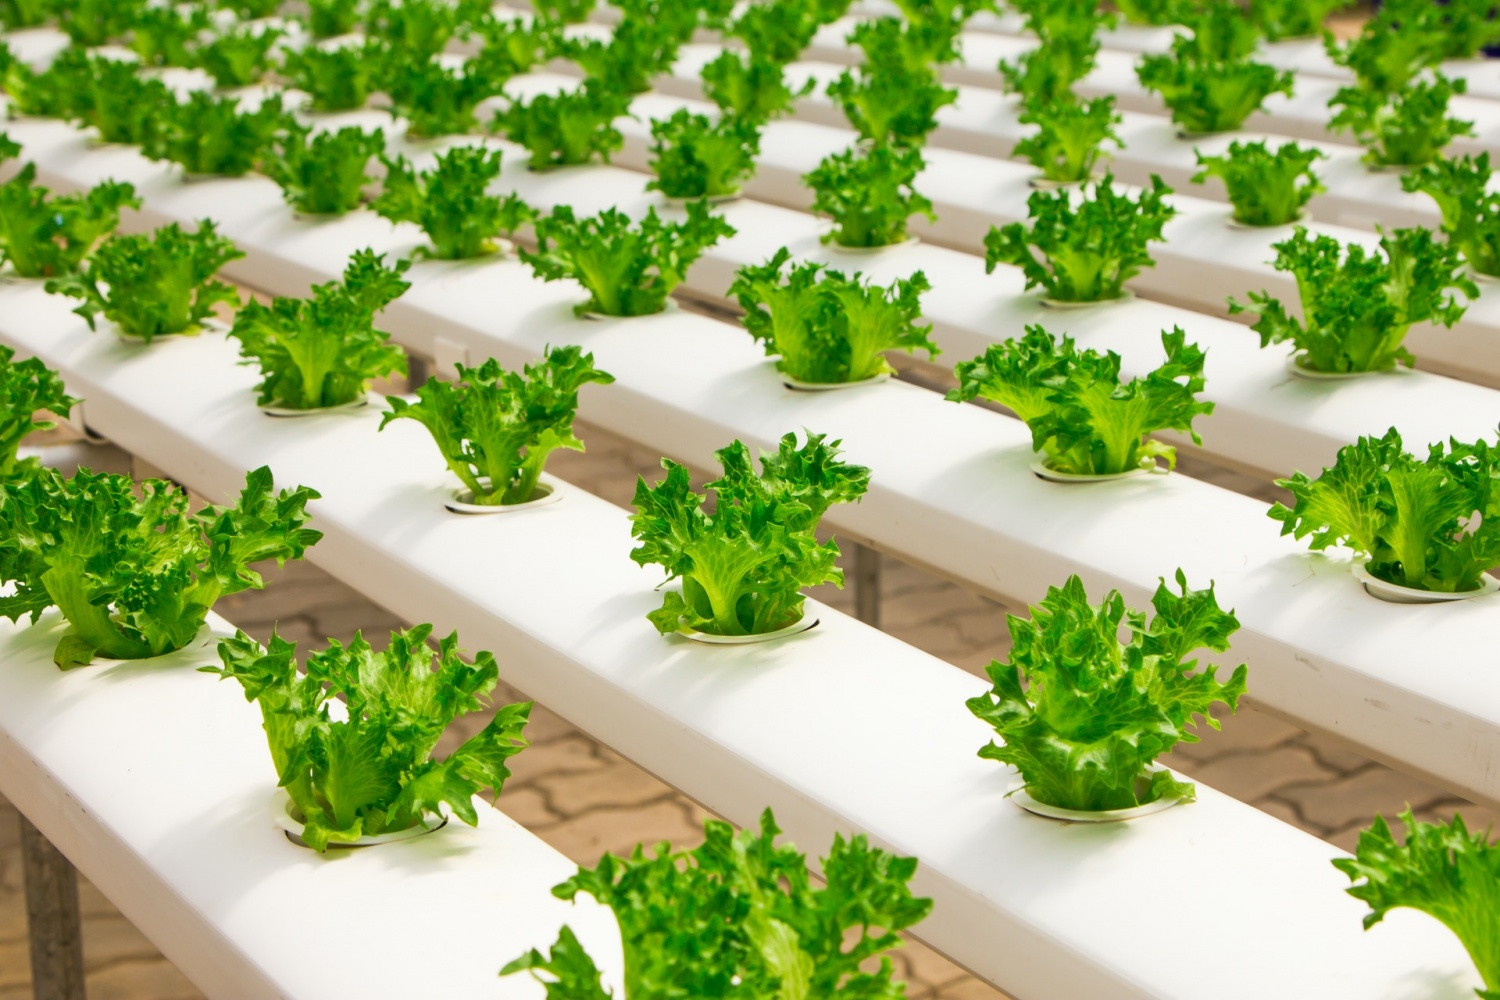 Edible Vaccine? Researchers Aim to Put mRNA Components from Pfizer, Moderna in Plants